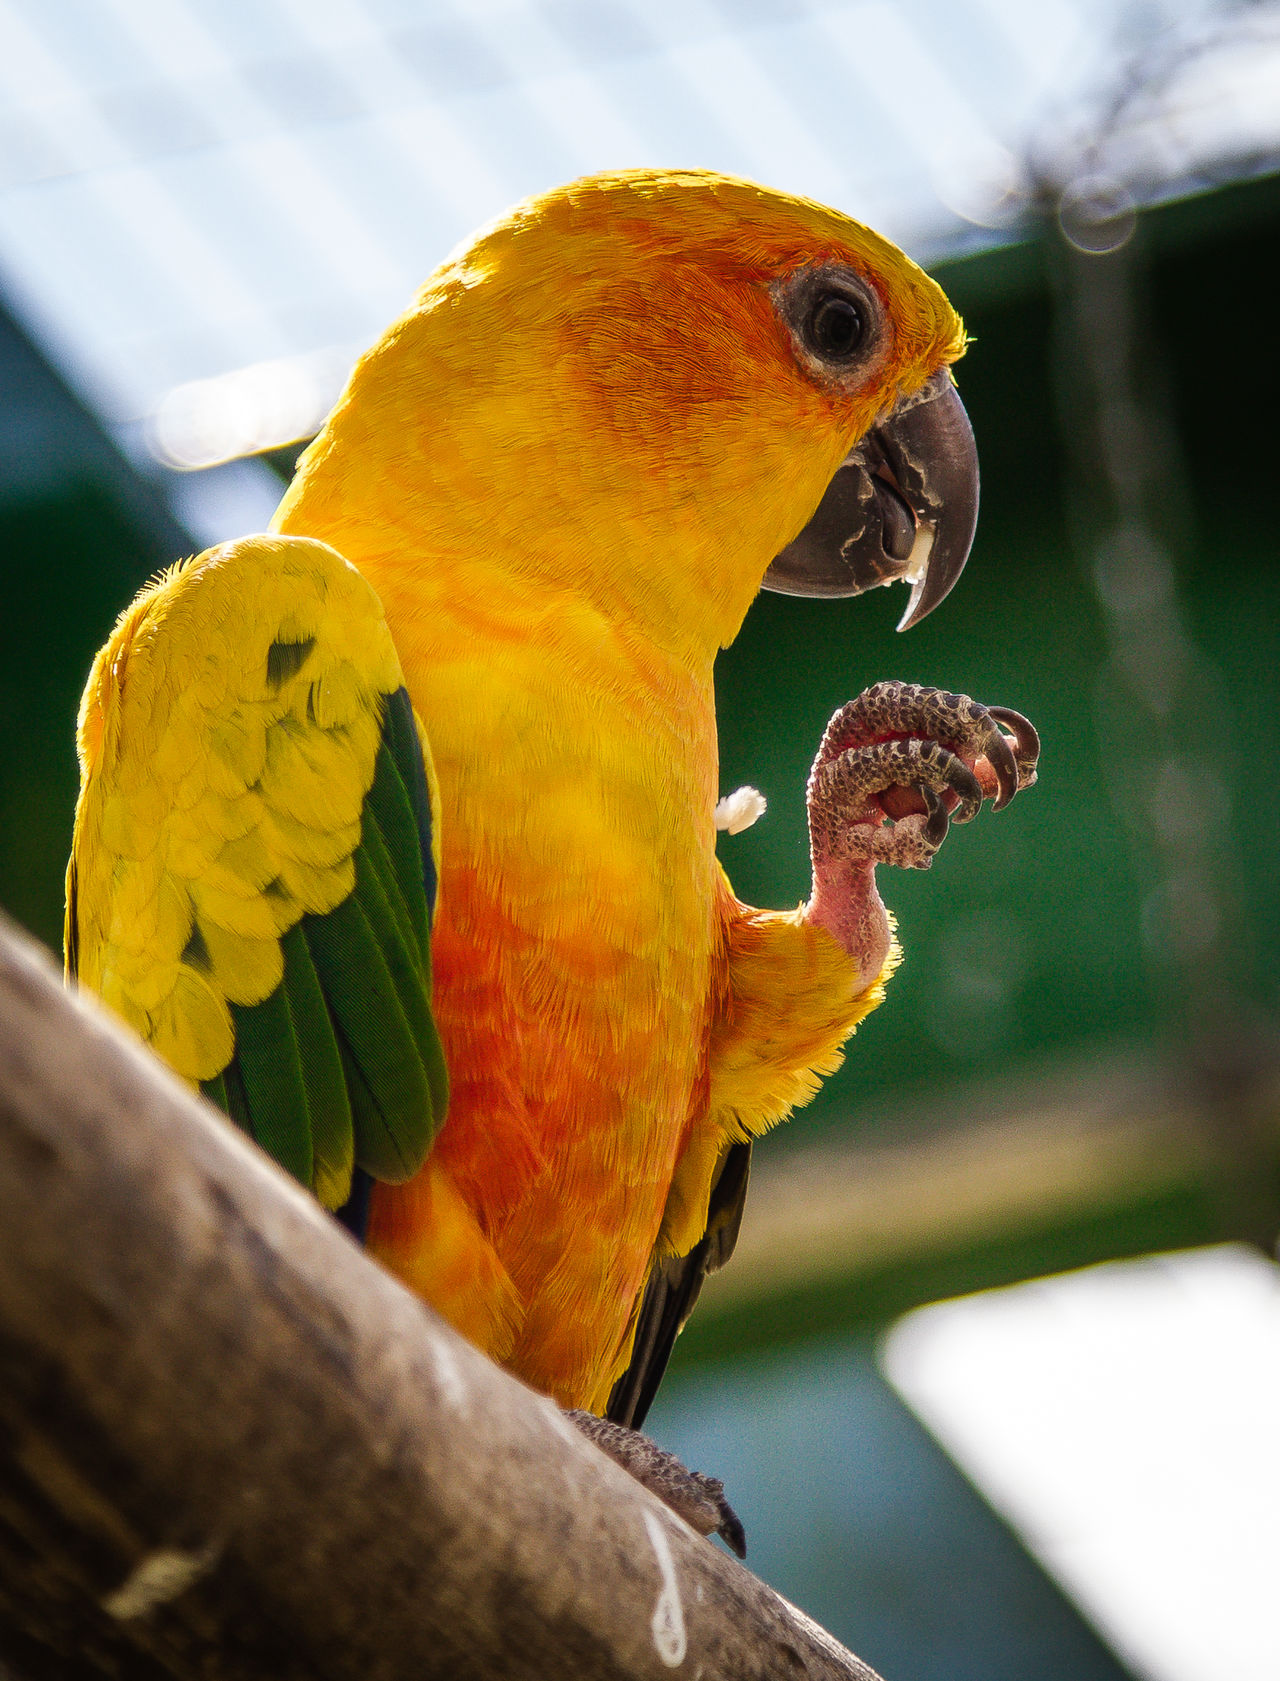 Animal Themes Animal Wildlife Animals In The Wild Beauty In Nature Bird Close-up Day Focus On Foreground Macaw Nature No People Outdoors Parrot Perching